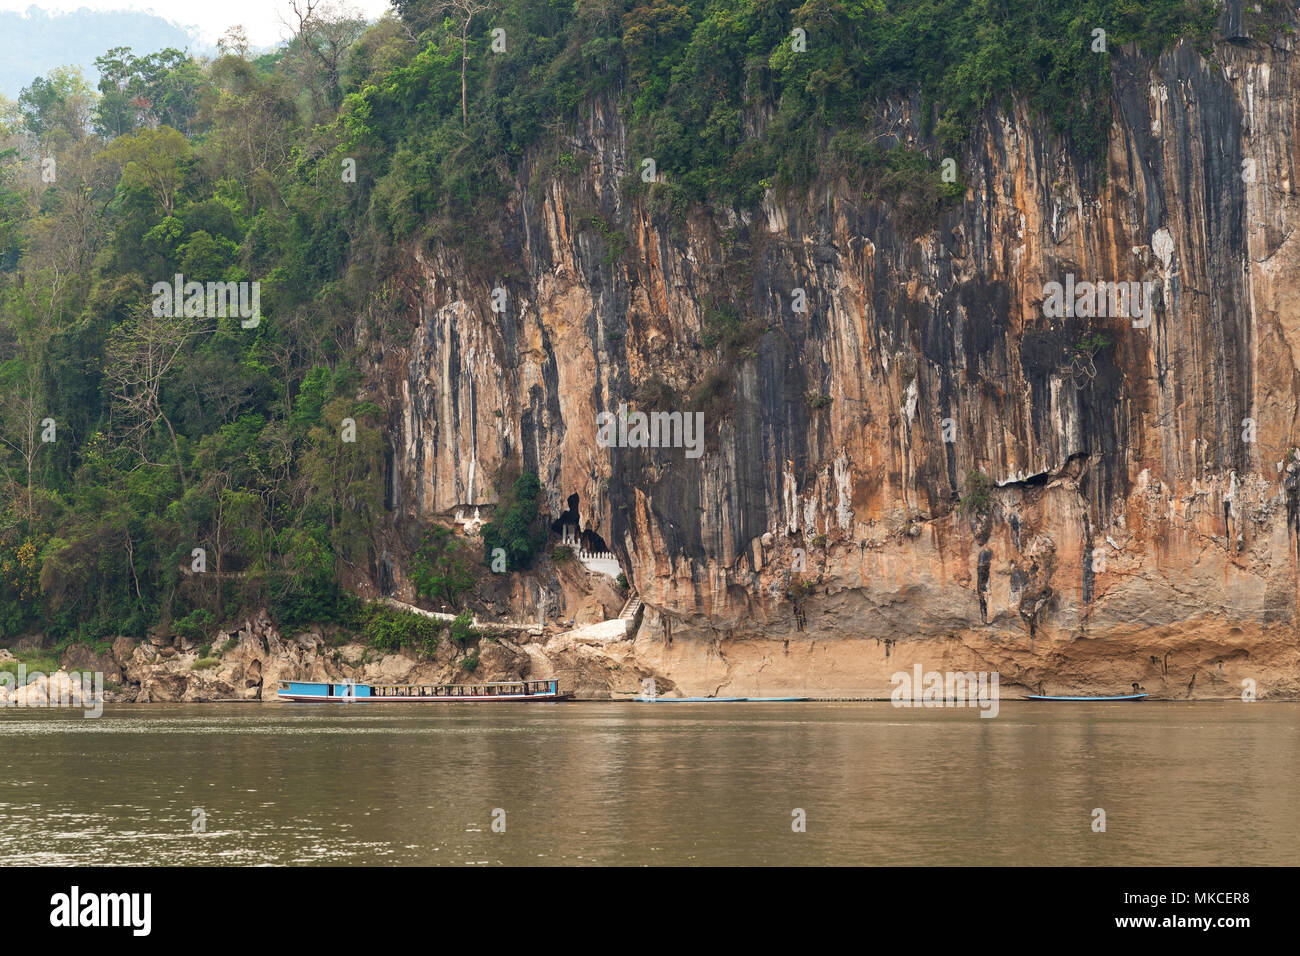 View of the Mekong River and limestone cliff where the famous Pak Ou Caves are set. They are located near Luang Prabang in Laos. - Stock Image